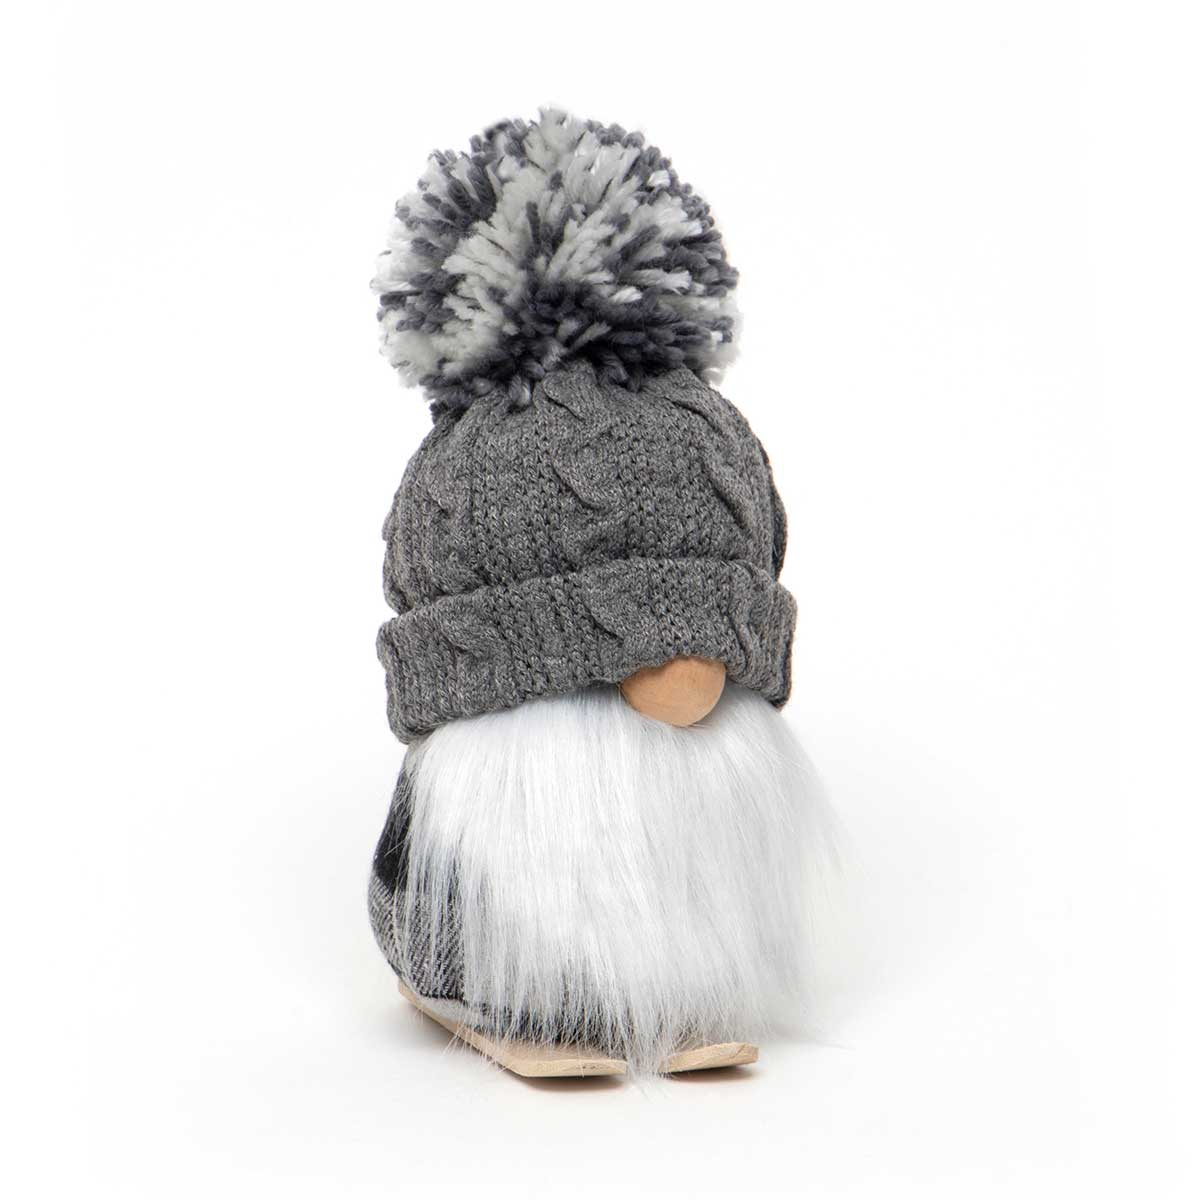 Gnome with Grey Pom Pom Hat (small)